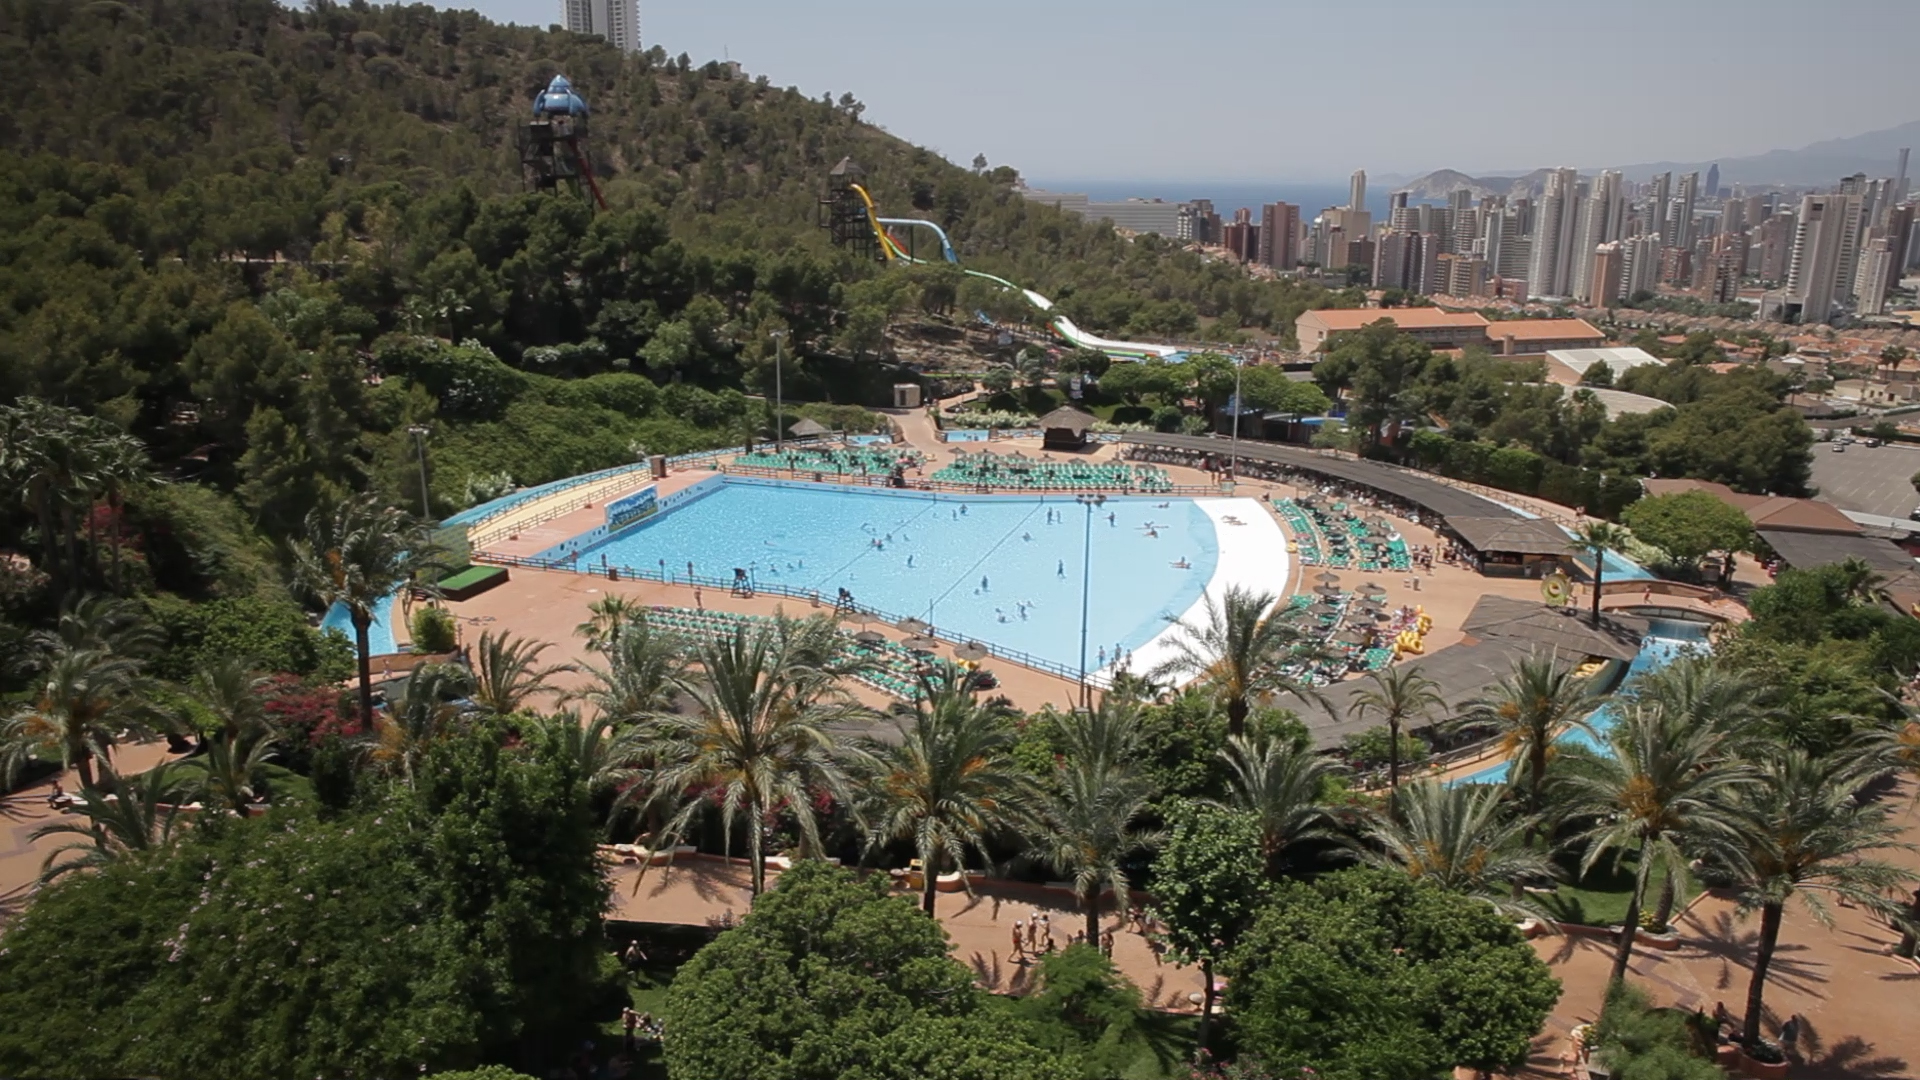 Get to know Benidorm and Marina Baixa, where Aqualandia is Found